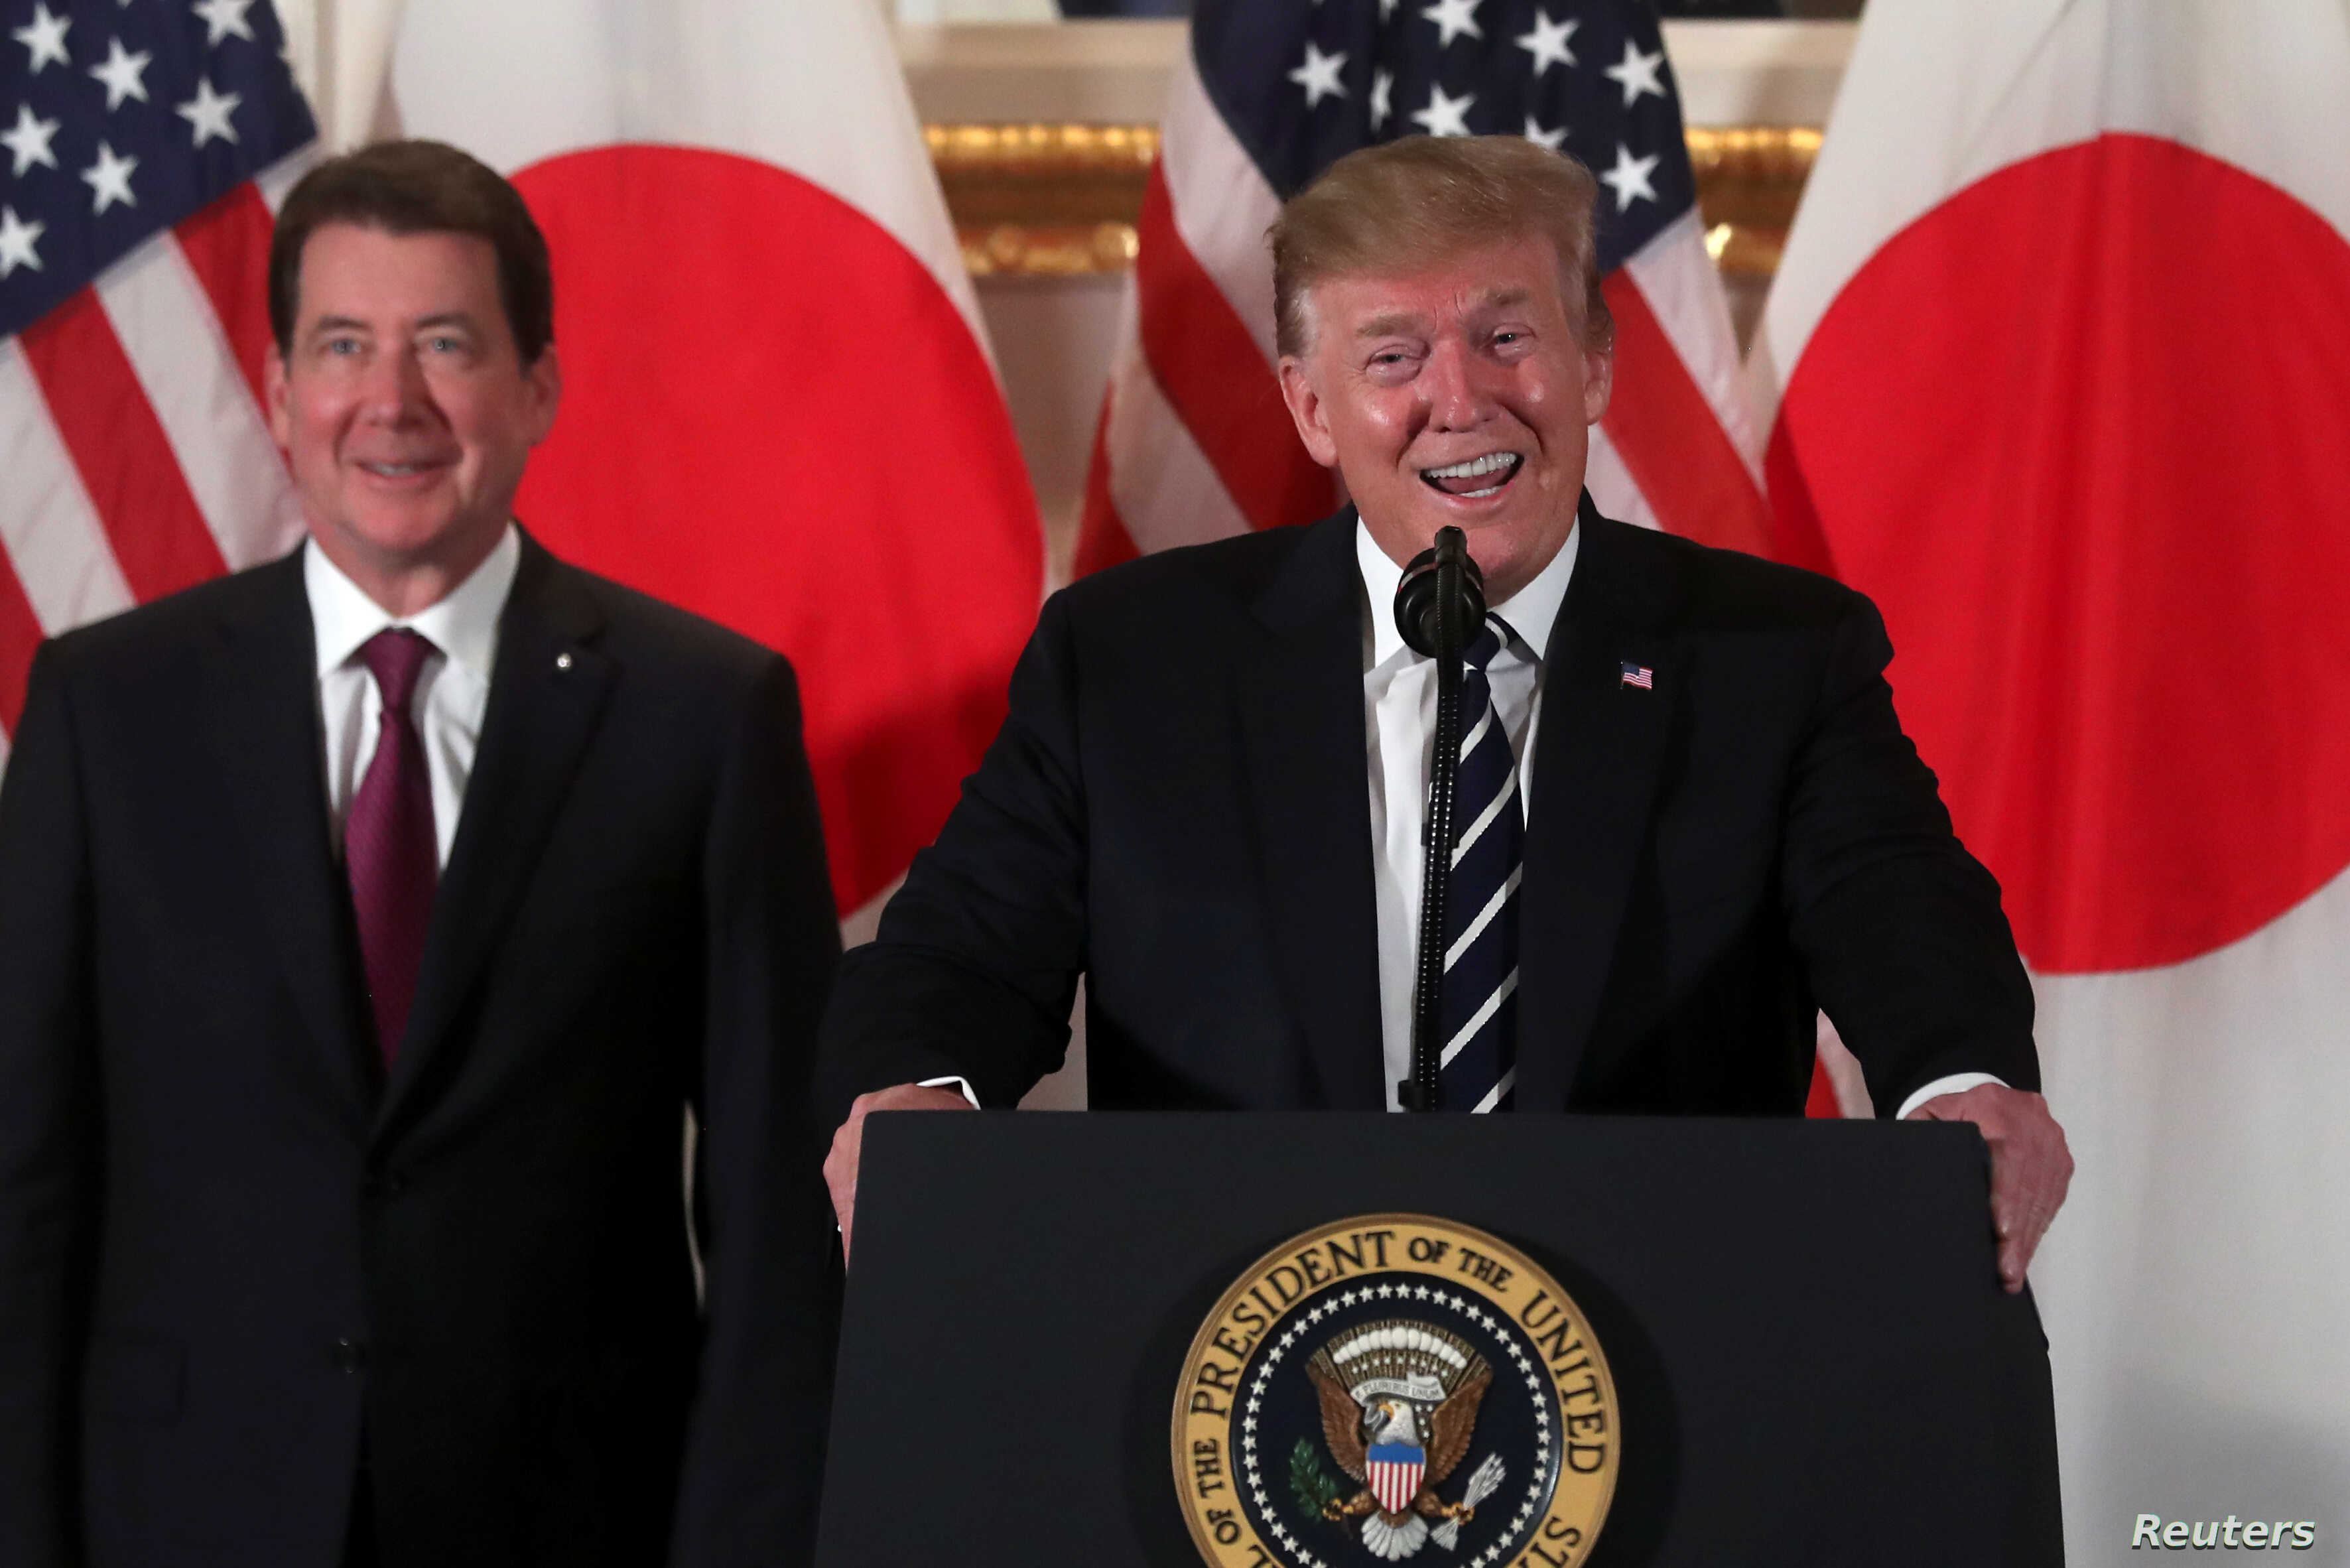 U.S. President Donald Trump attends a Japanese business leaders event with U.S. Ambassador to Japan William Hagerty in Tokyo, May 25, 2019.